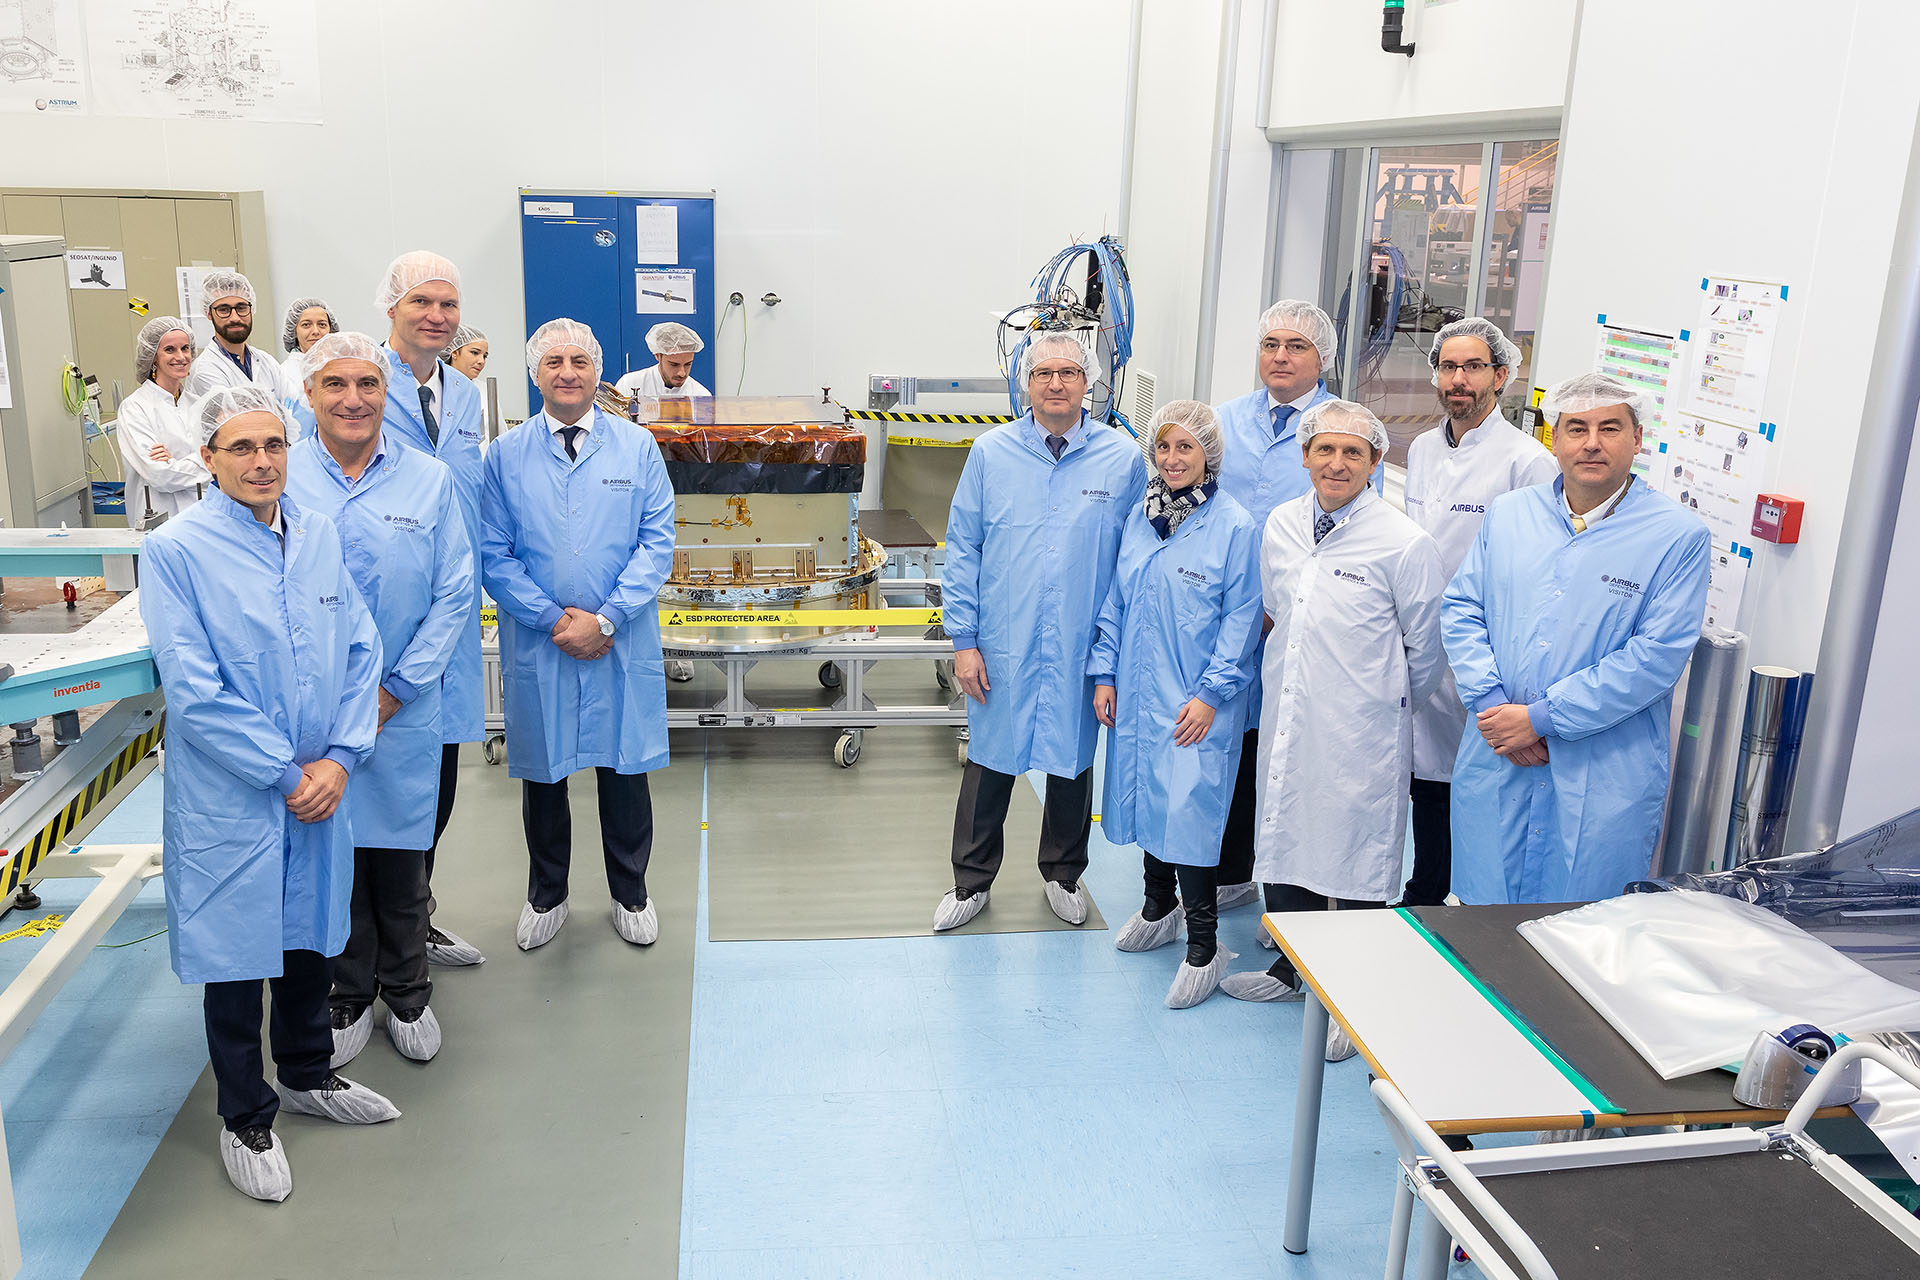 Representatives from Eutelsat, Airbus, the Spanish Centre for the Development of Industrial Technology and ESA with the Quantum active array antenna developed by Airbus Spain. Image credit: Airbus